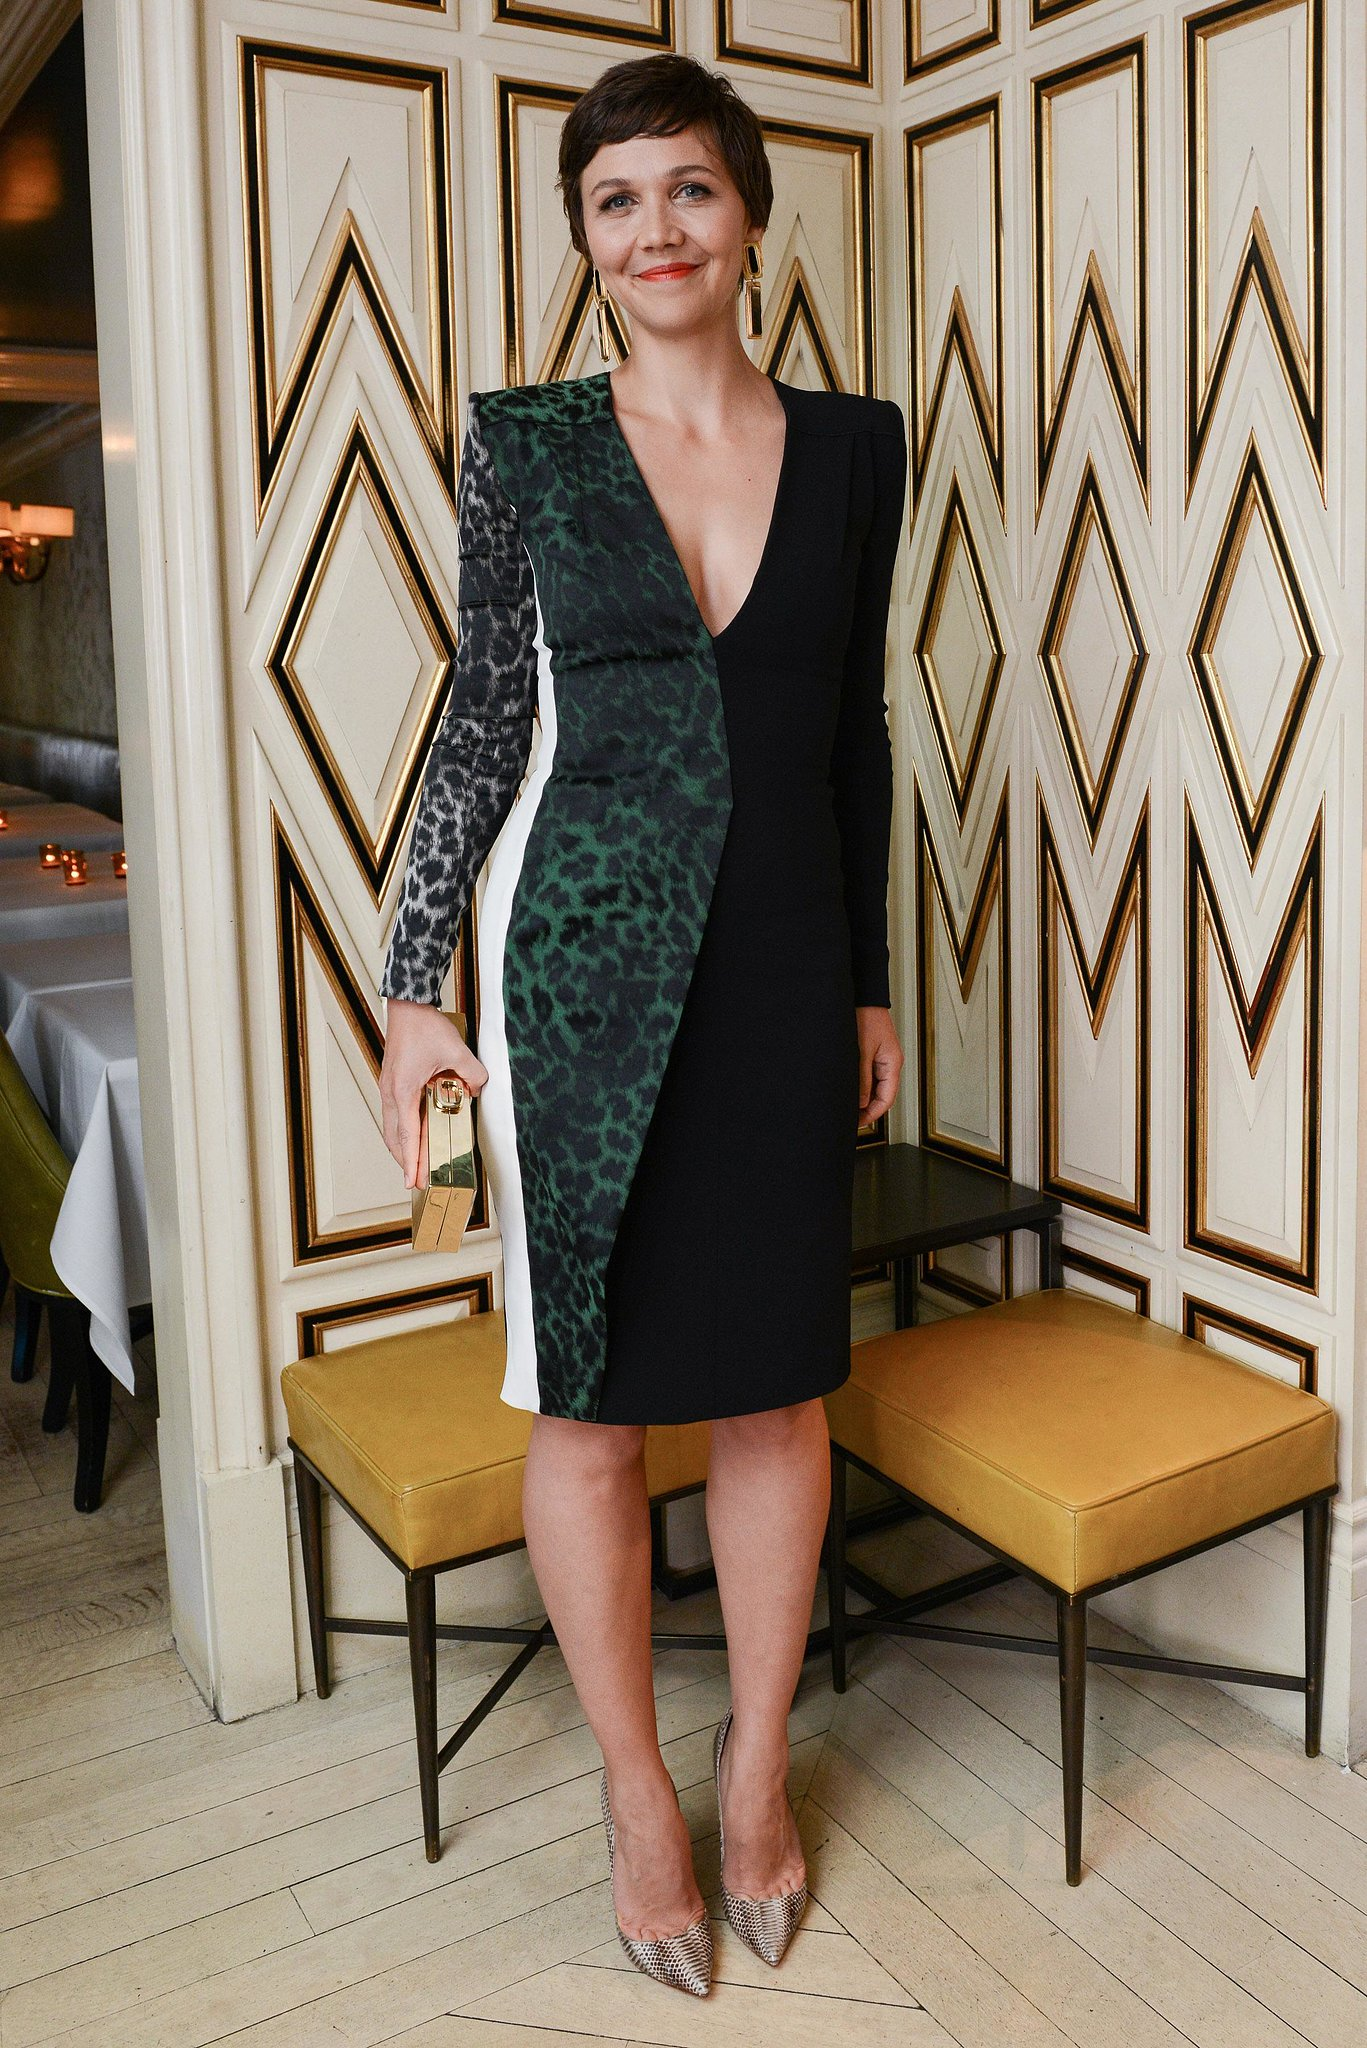 Maggie Gyllenhaal at the Bergdorf Goodman dinner honoring Roland Mouret in New York.  Photo courtesy of Dean Neville/BFAnyc.com